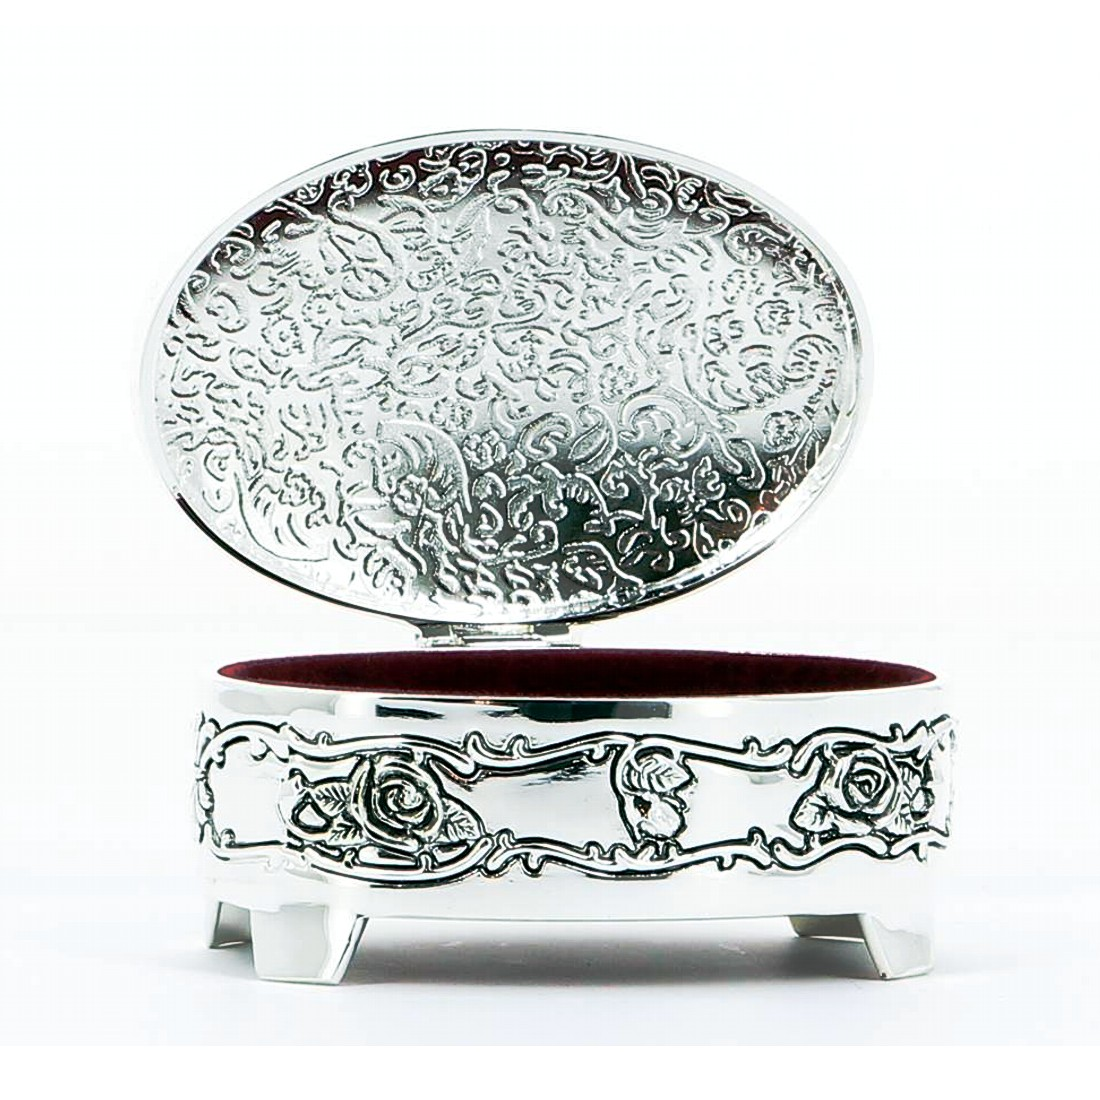 Engraved Oval Trinket Box with Feet